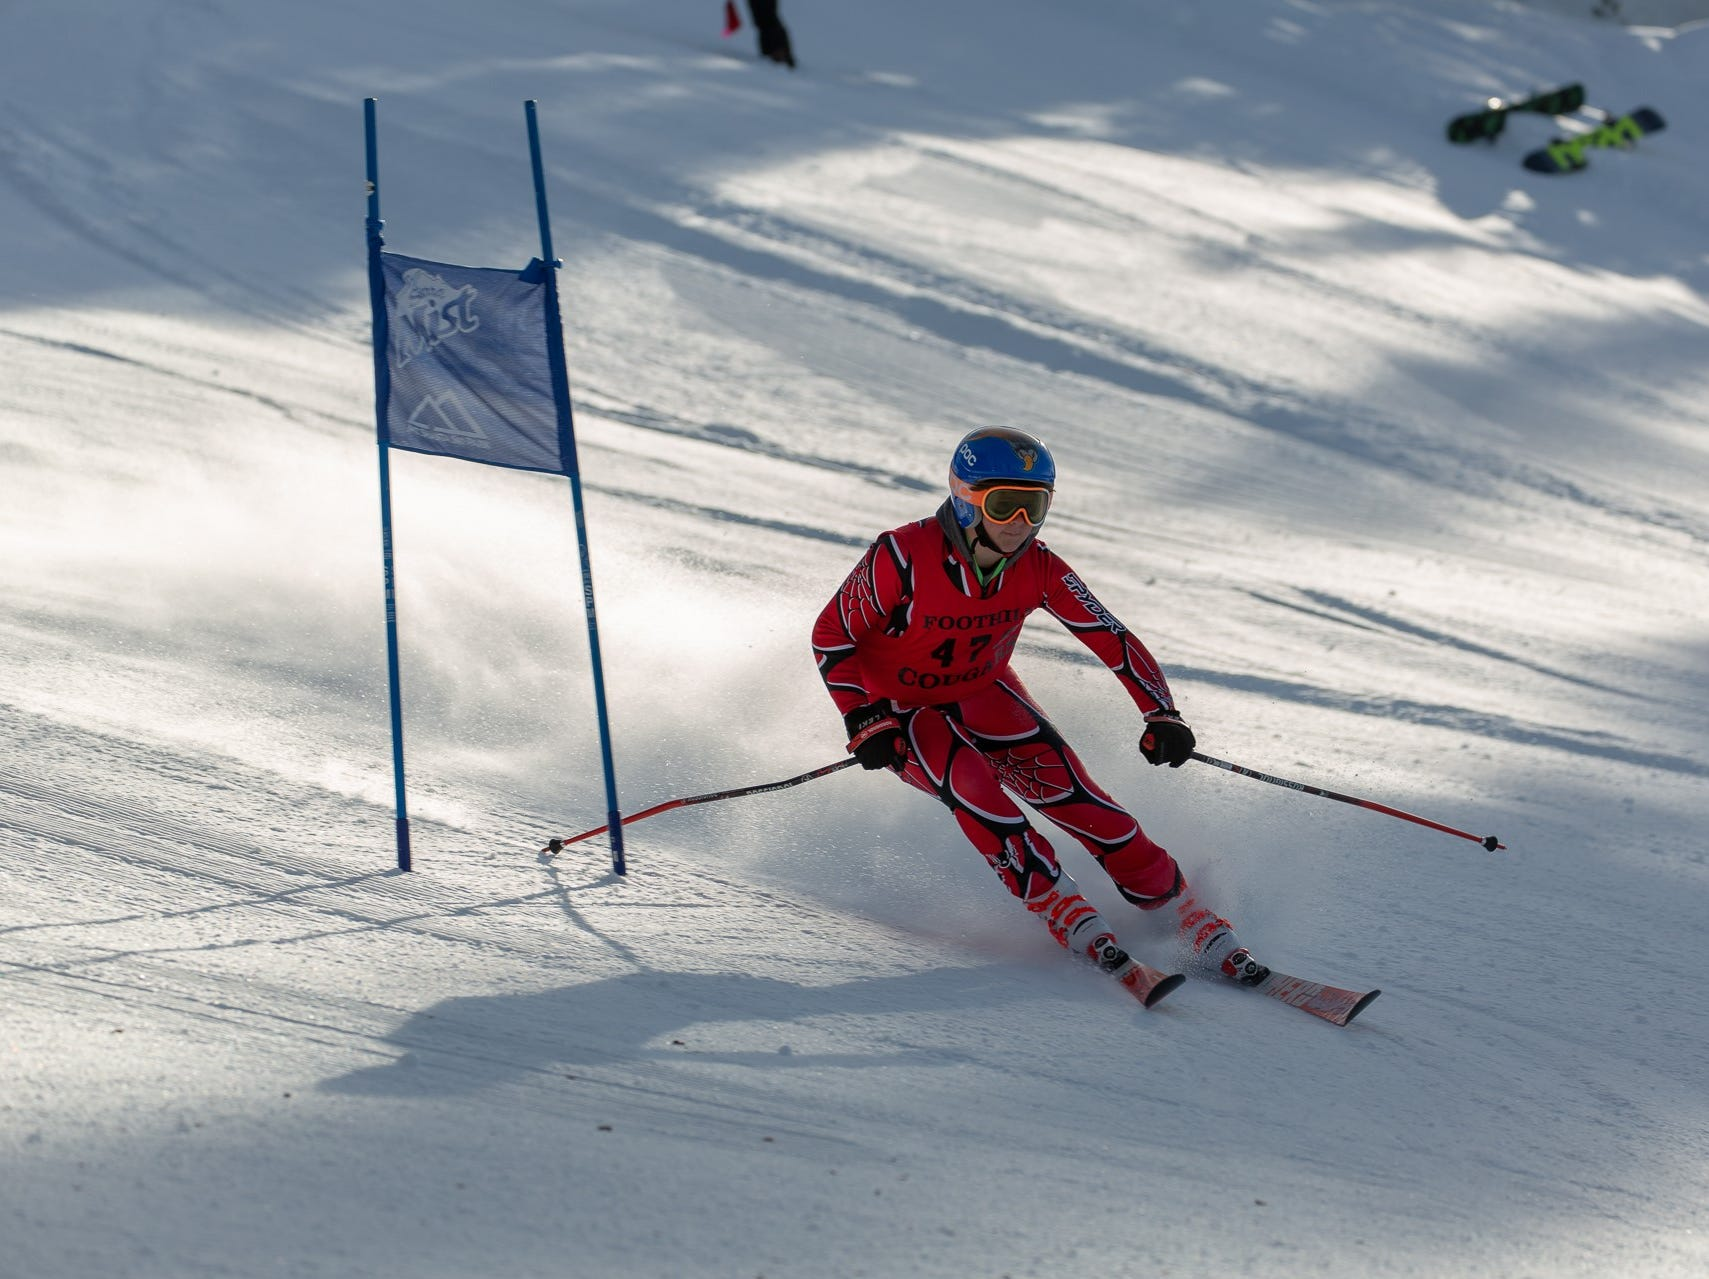 Matthew Ferrari of Foothill competes in the first high school ski meet of 2019 on Monday, Jan. 14 at Mt. Shasta Ski Park.